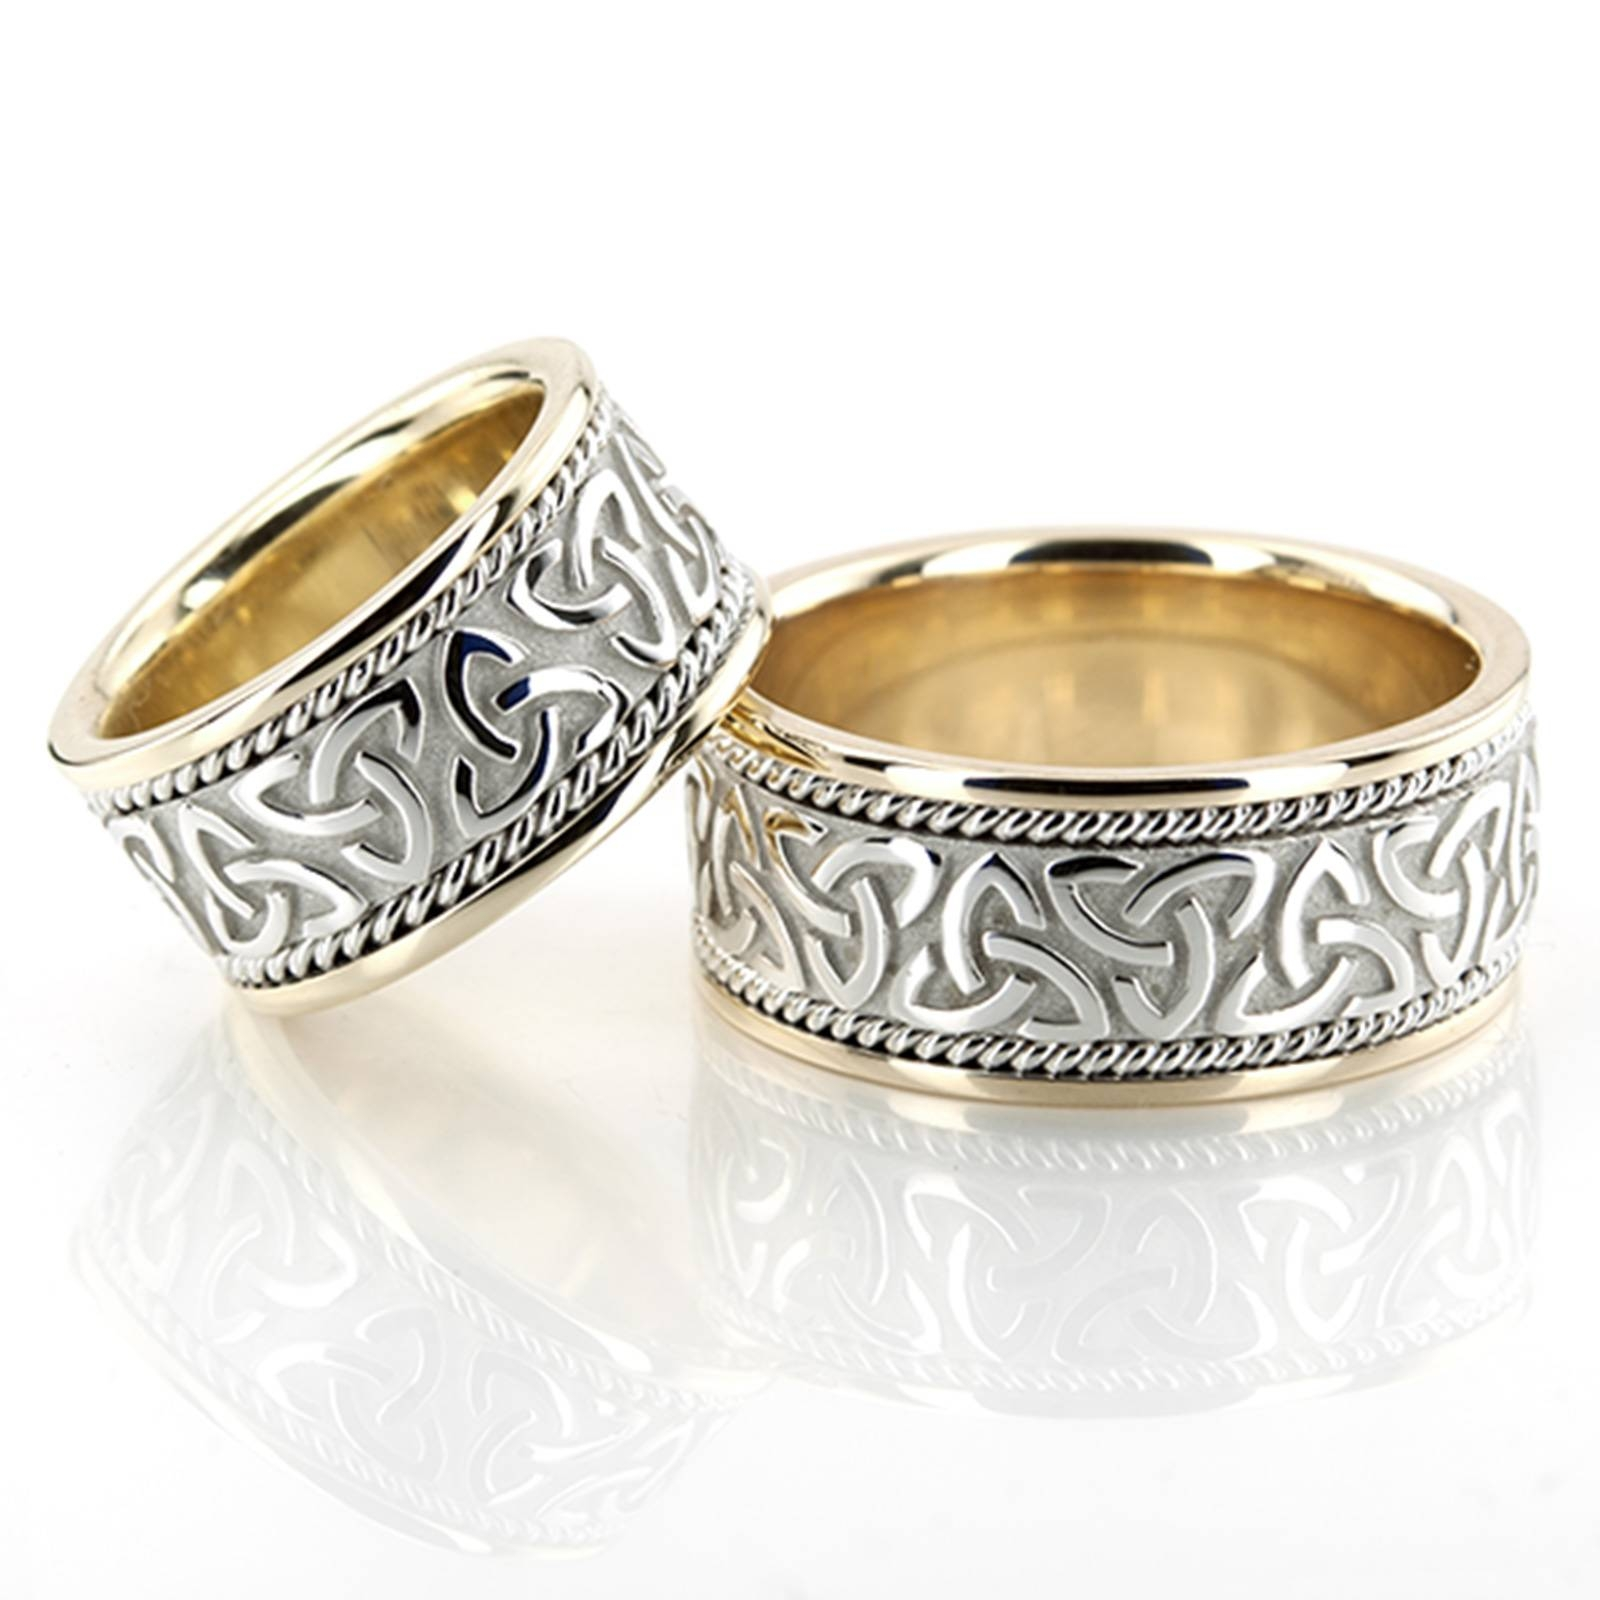 Wedding Rings : Mens Celtic Wedding Bands Gold Irish Celtic Throughout Irish Men's Wedding Bands (View 12 of 15)